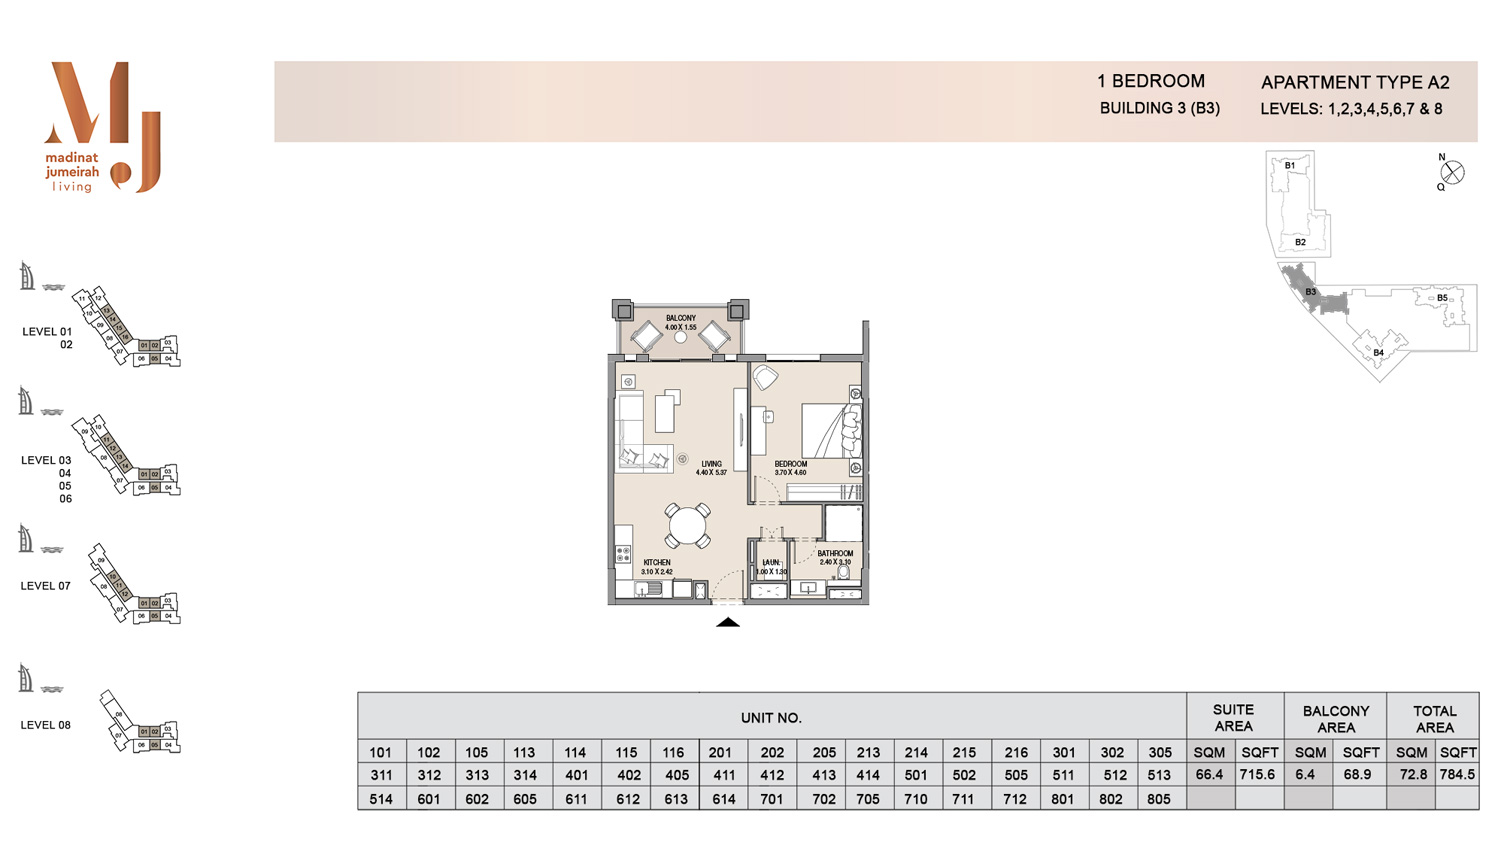 Building3 1 Bedroom, Type A2, Levels 1 to 8, Size 784.5 sq.ft